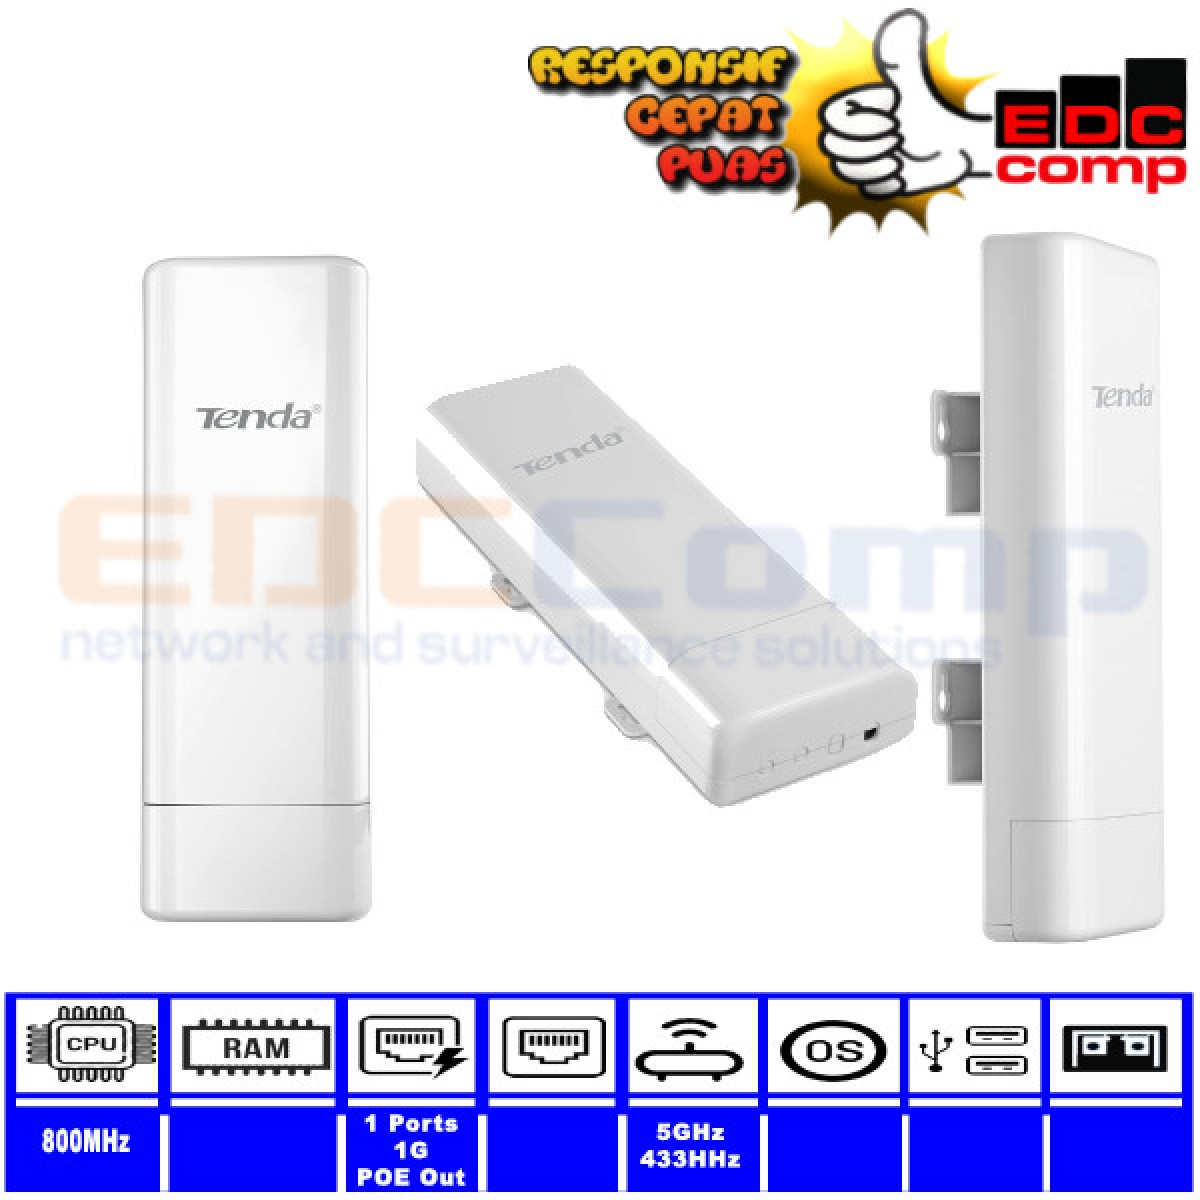 TENDA O6 5GHz 433Mbps Outdoor Point to Point CPE - EdcComp